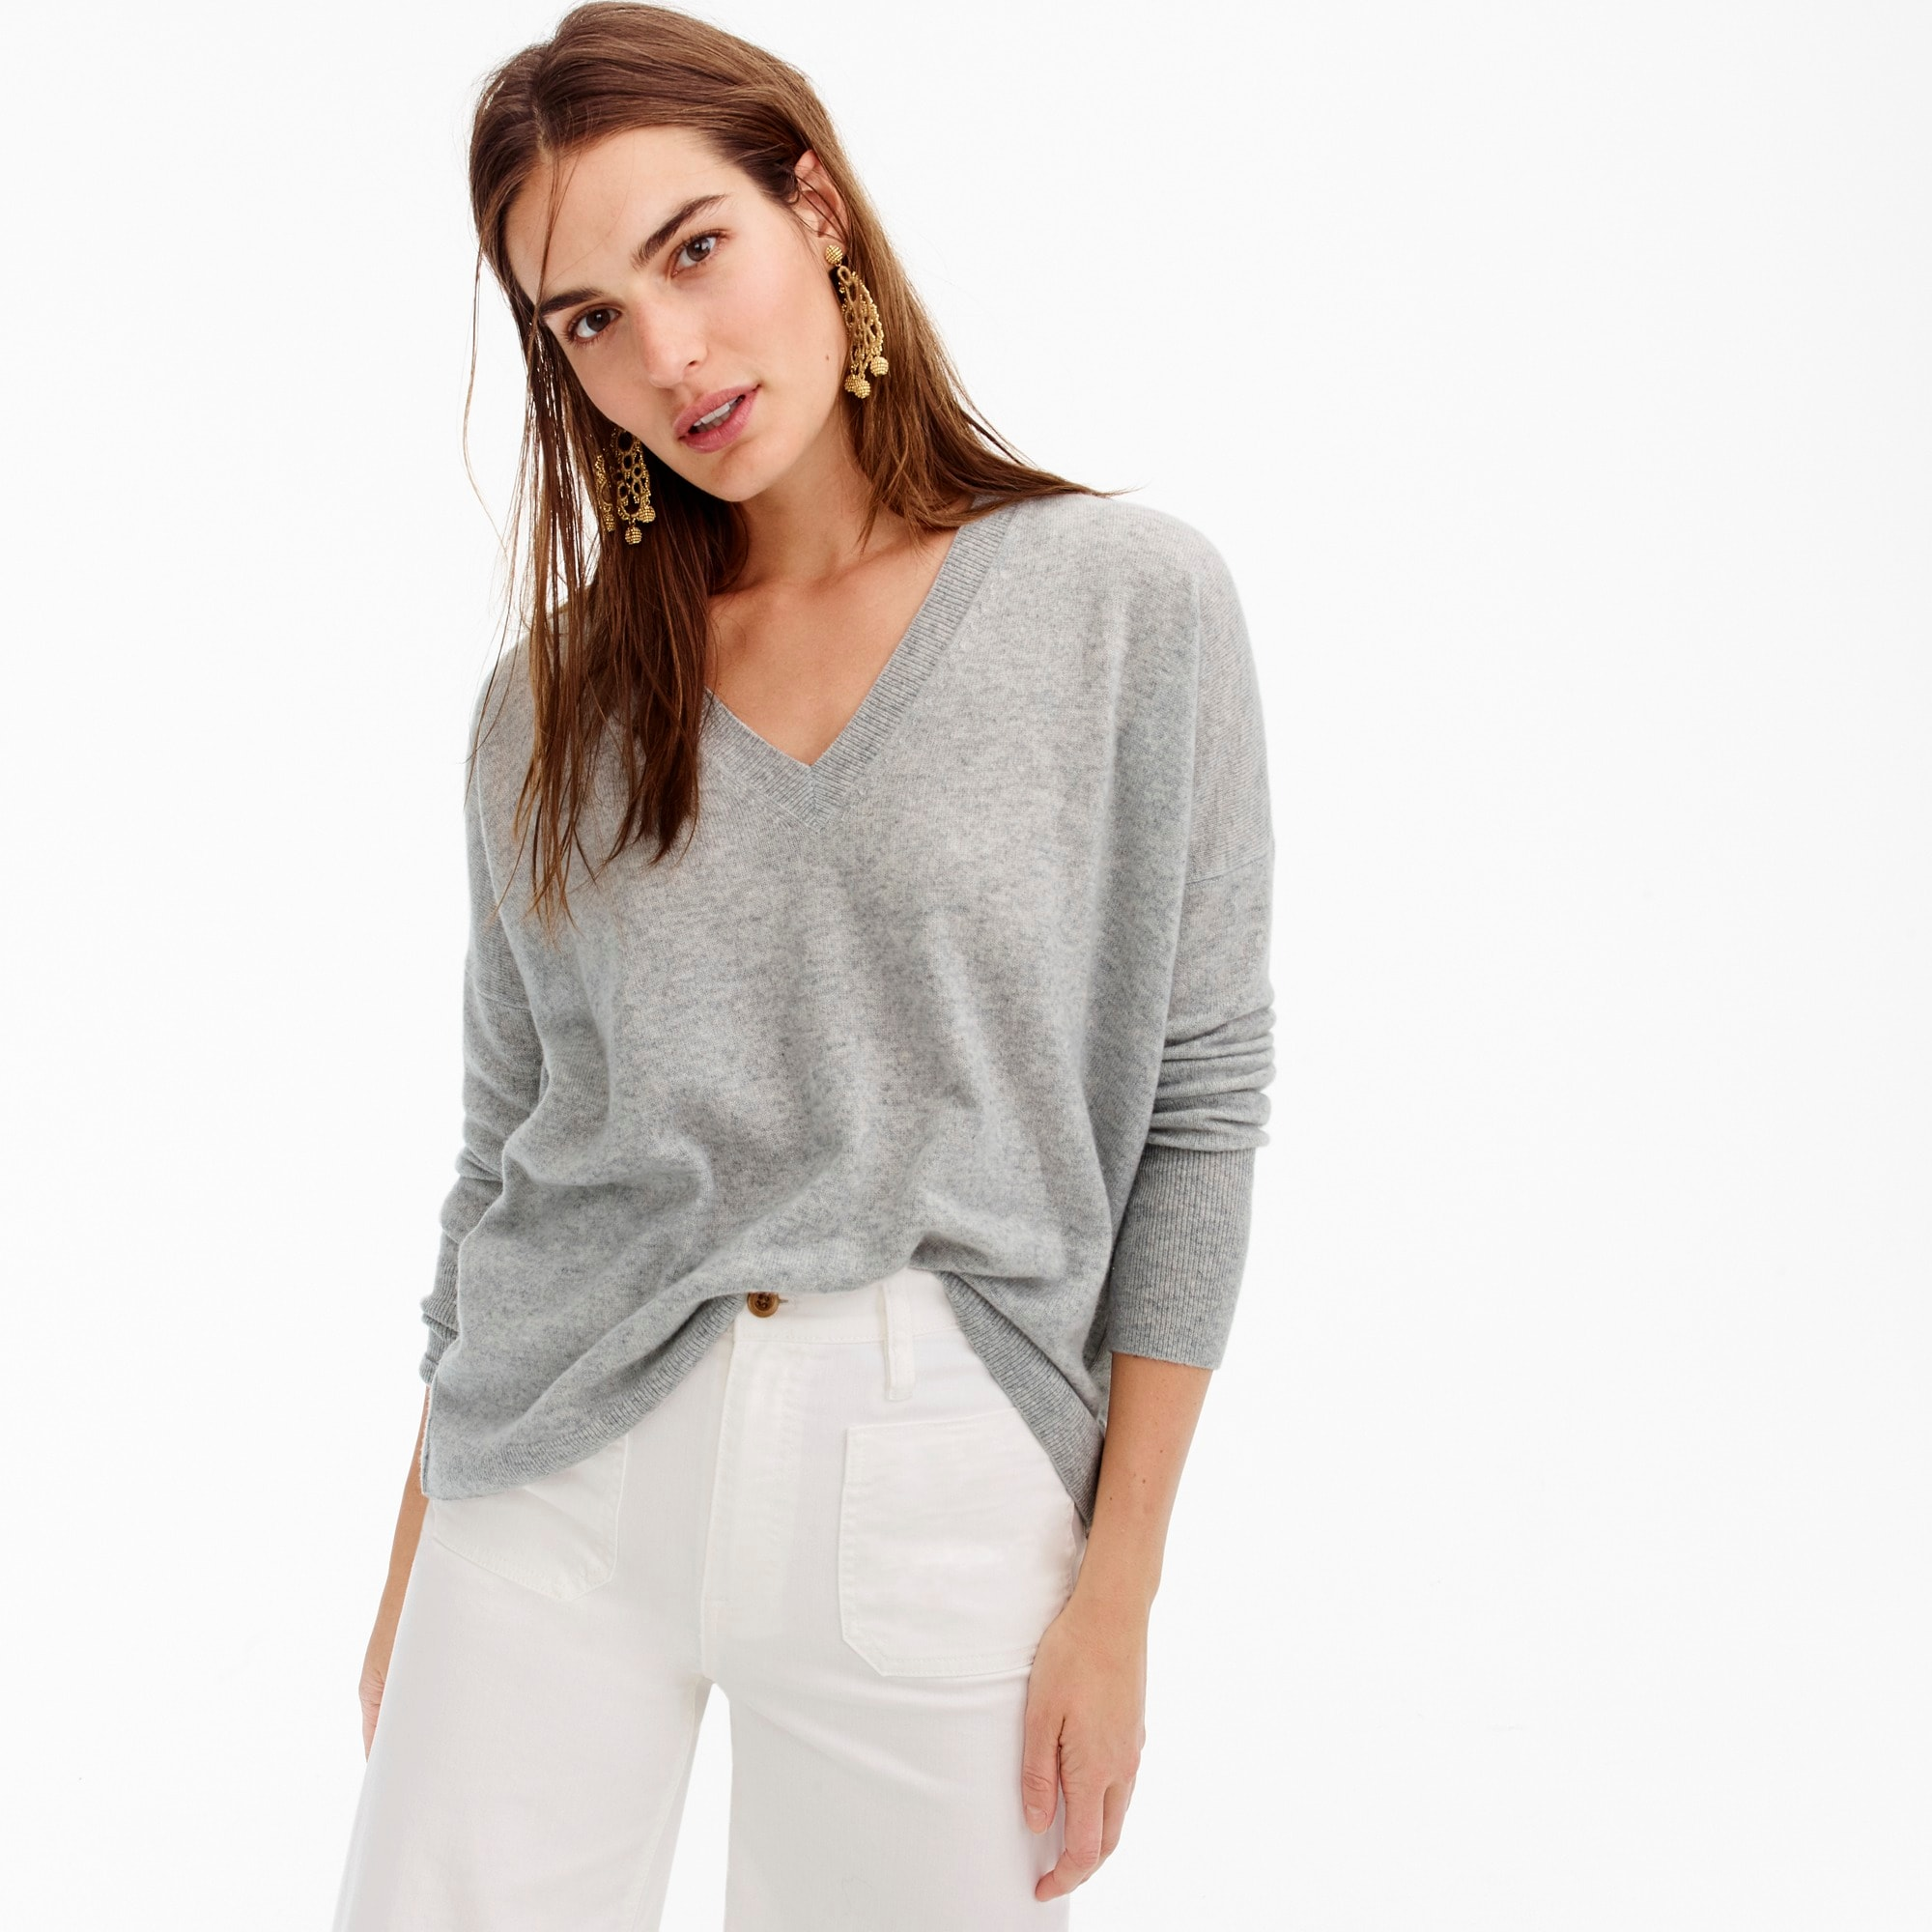 Image 1 for V-neck Boyfriend sweater in everyday cashmere